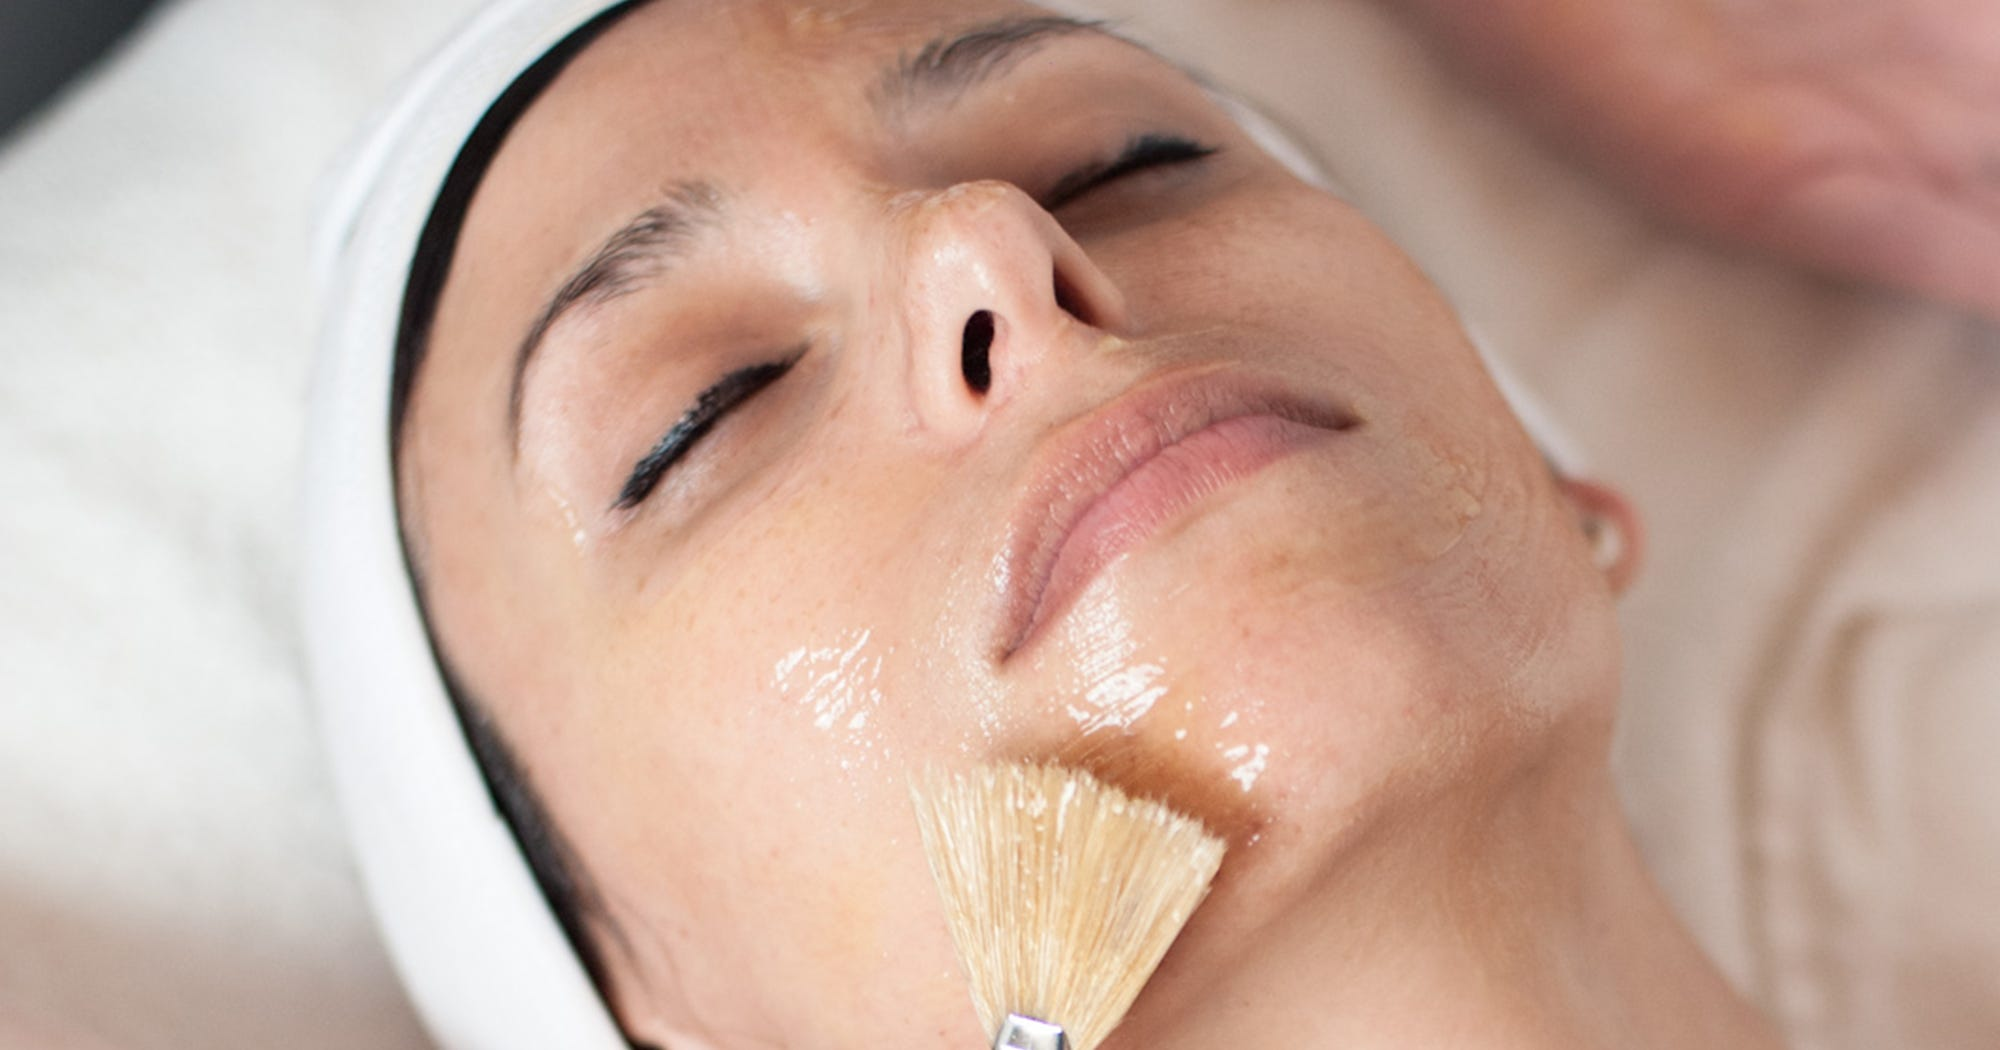 These Facials Show You Every Gross Thing Hiding In Your Pores